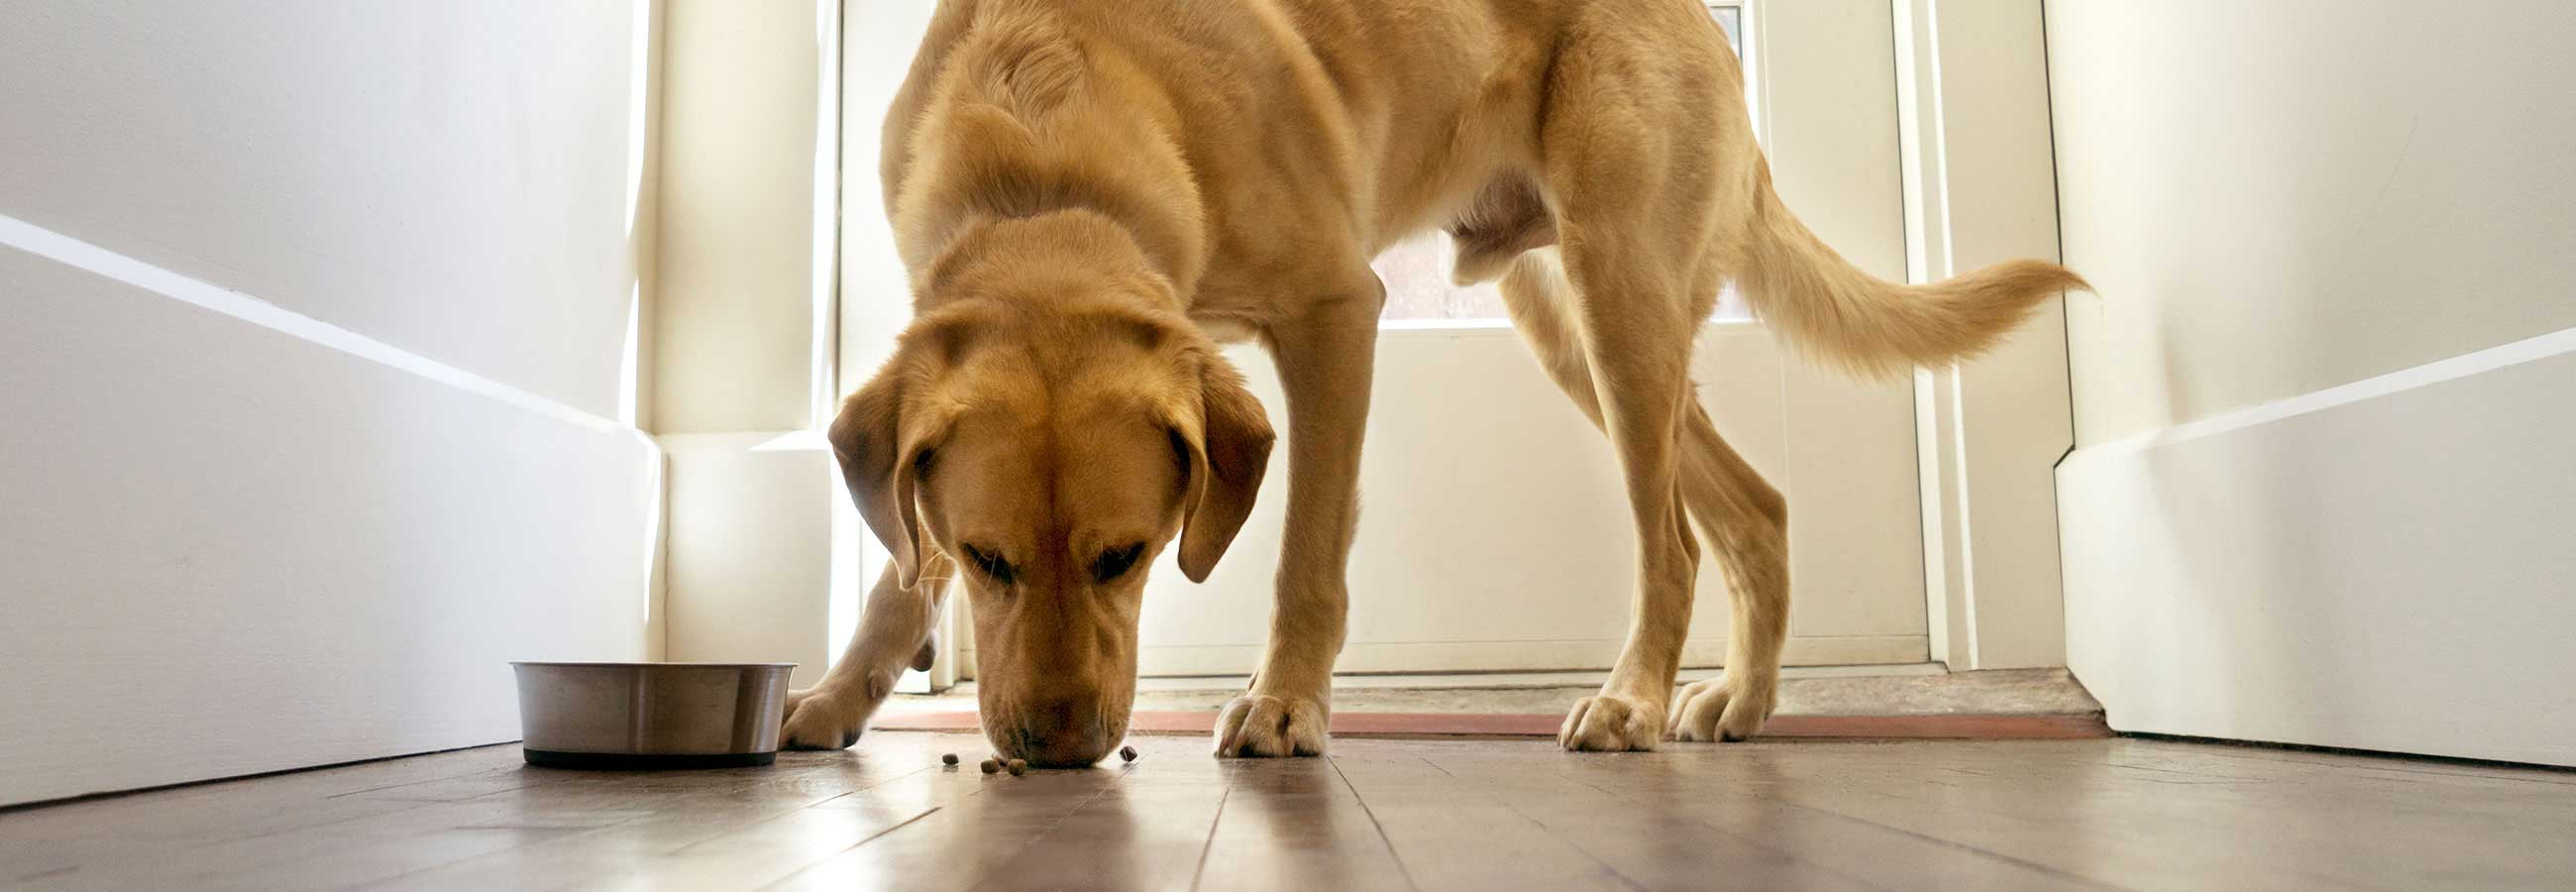 Yellow labrador retriever eating dog food off the floor